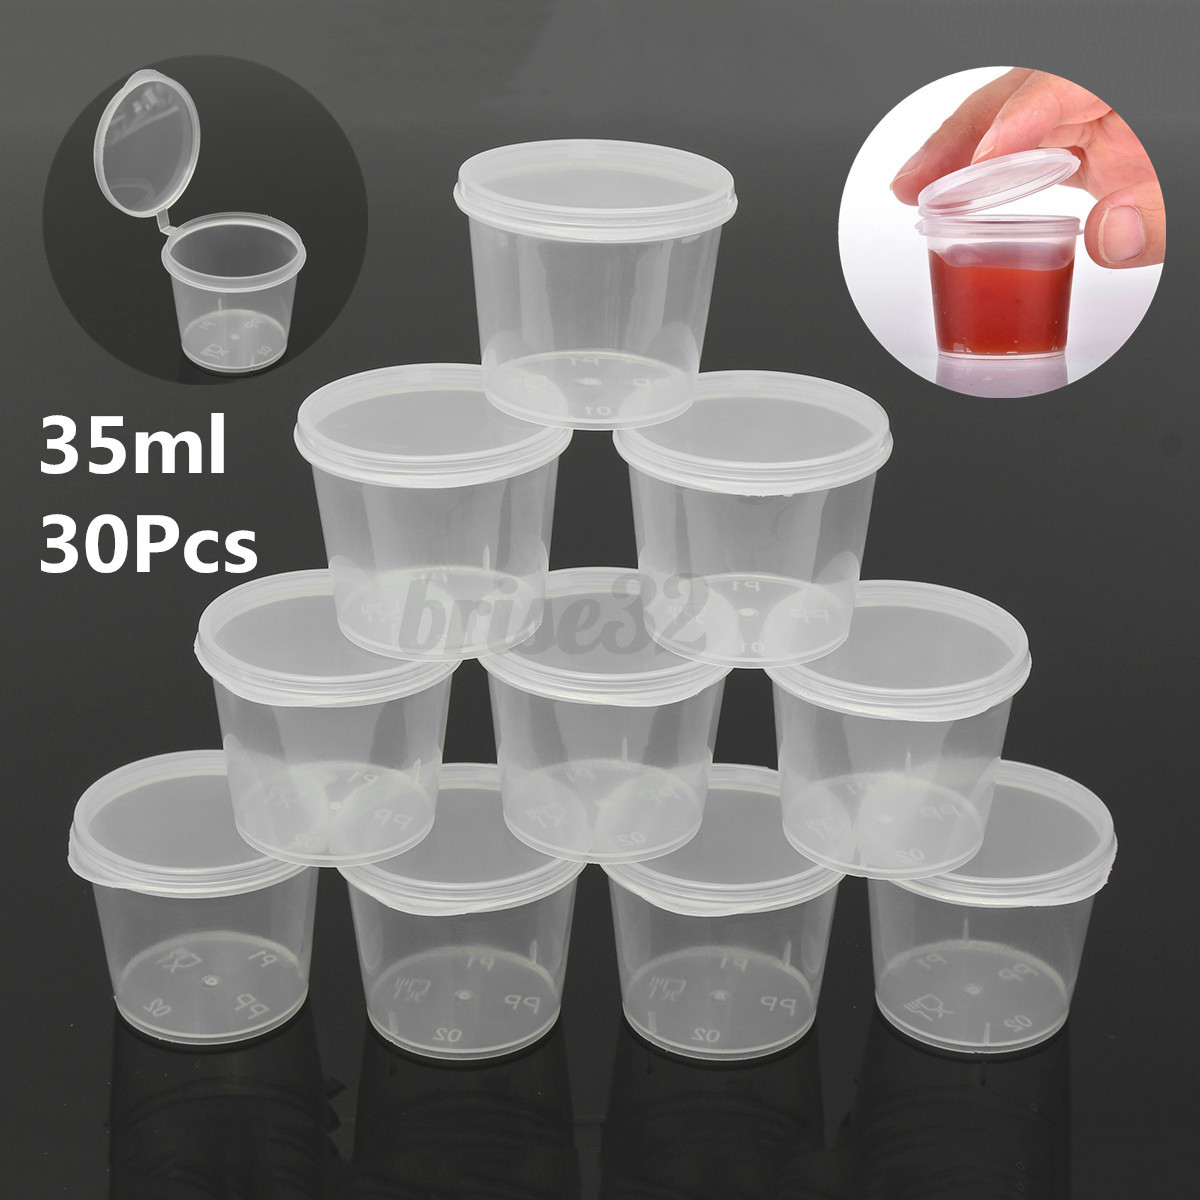 Mini Plant Pots Bulk 35ml 30 Set Small Plastic Sauce Cups Food Storage